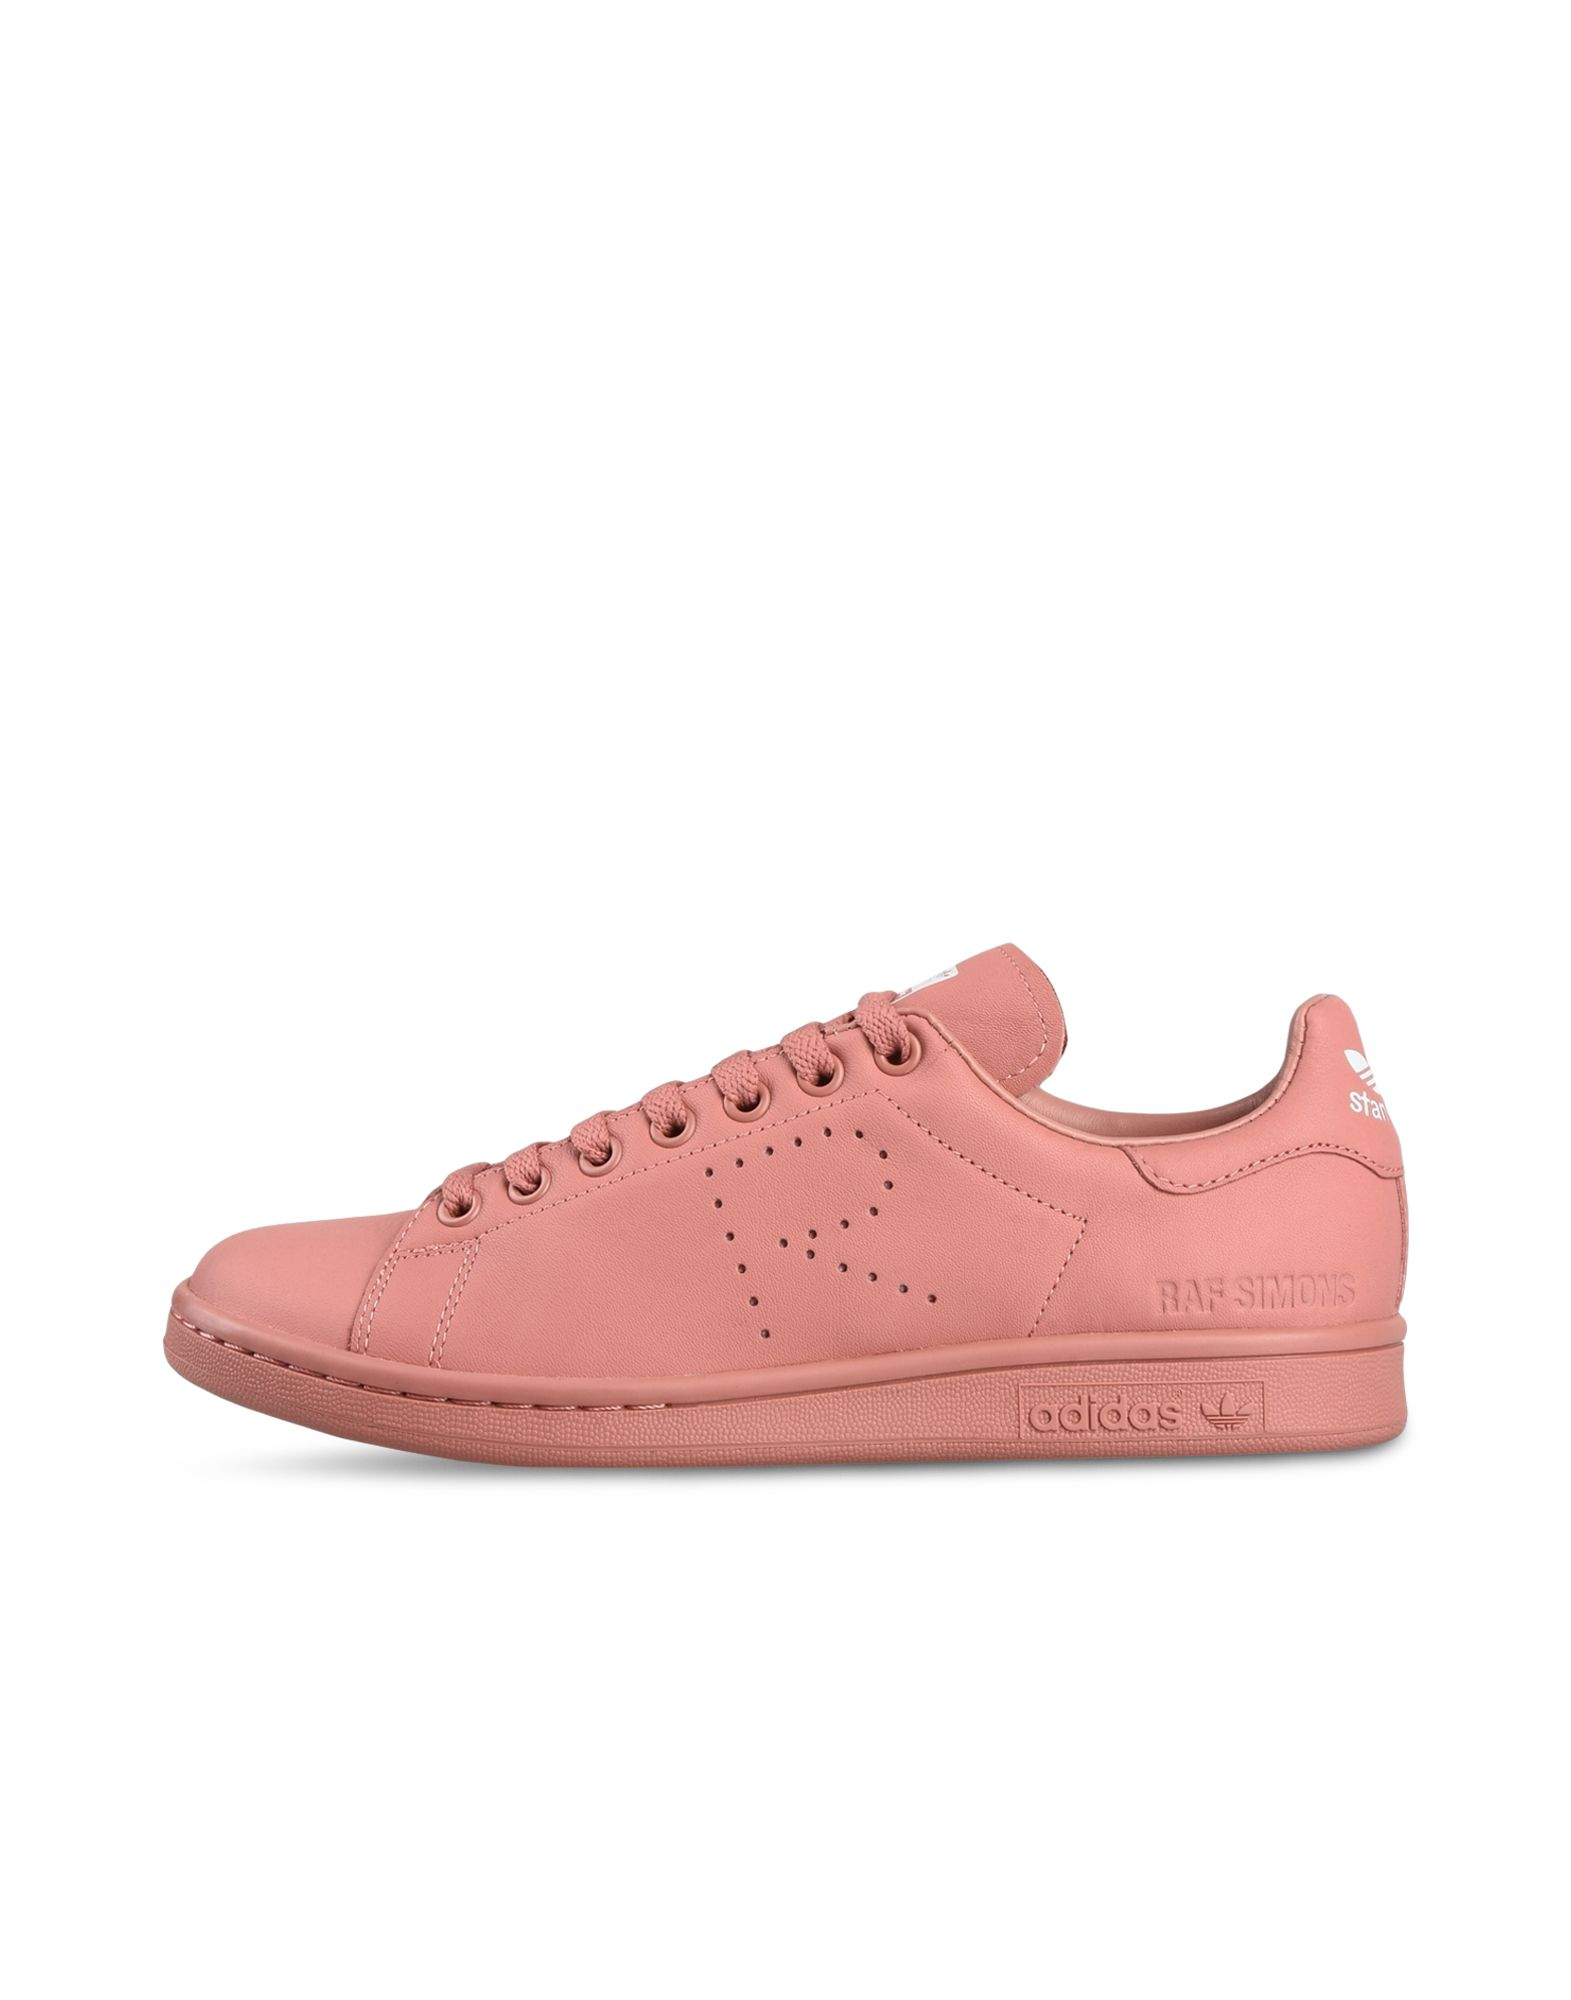 adidas by raf simons stan smith sneakers adidas y 3 official store. Black Bedroom Furniture Sets. Home Design Ideas